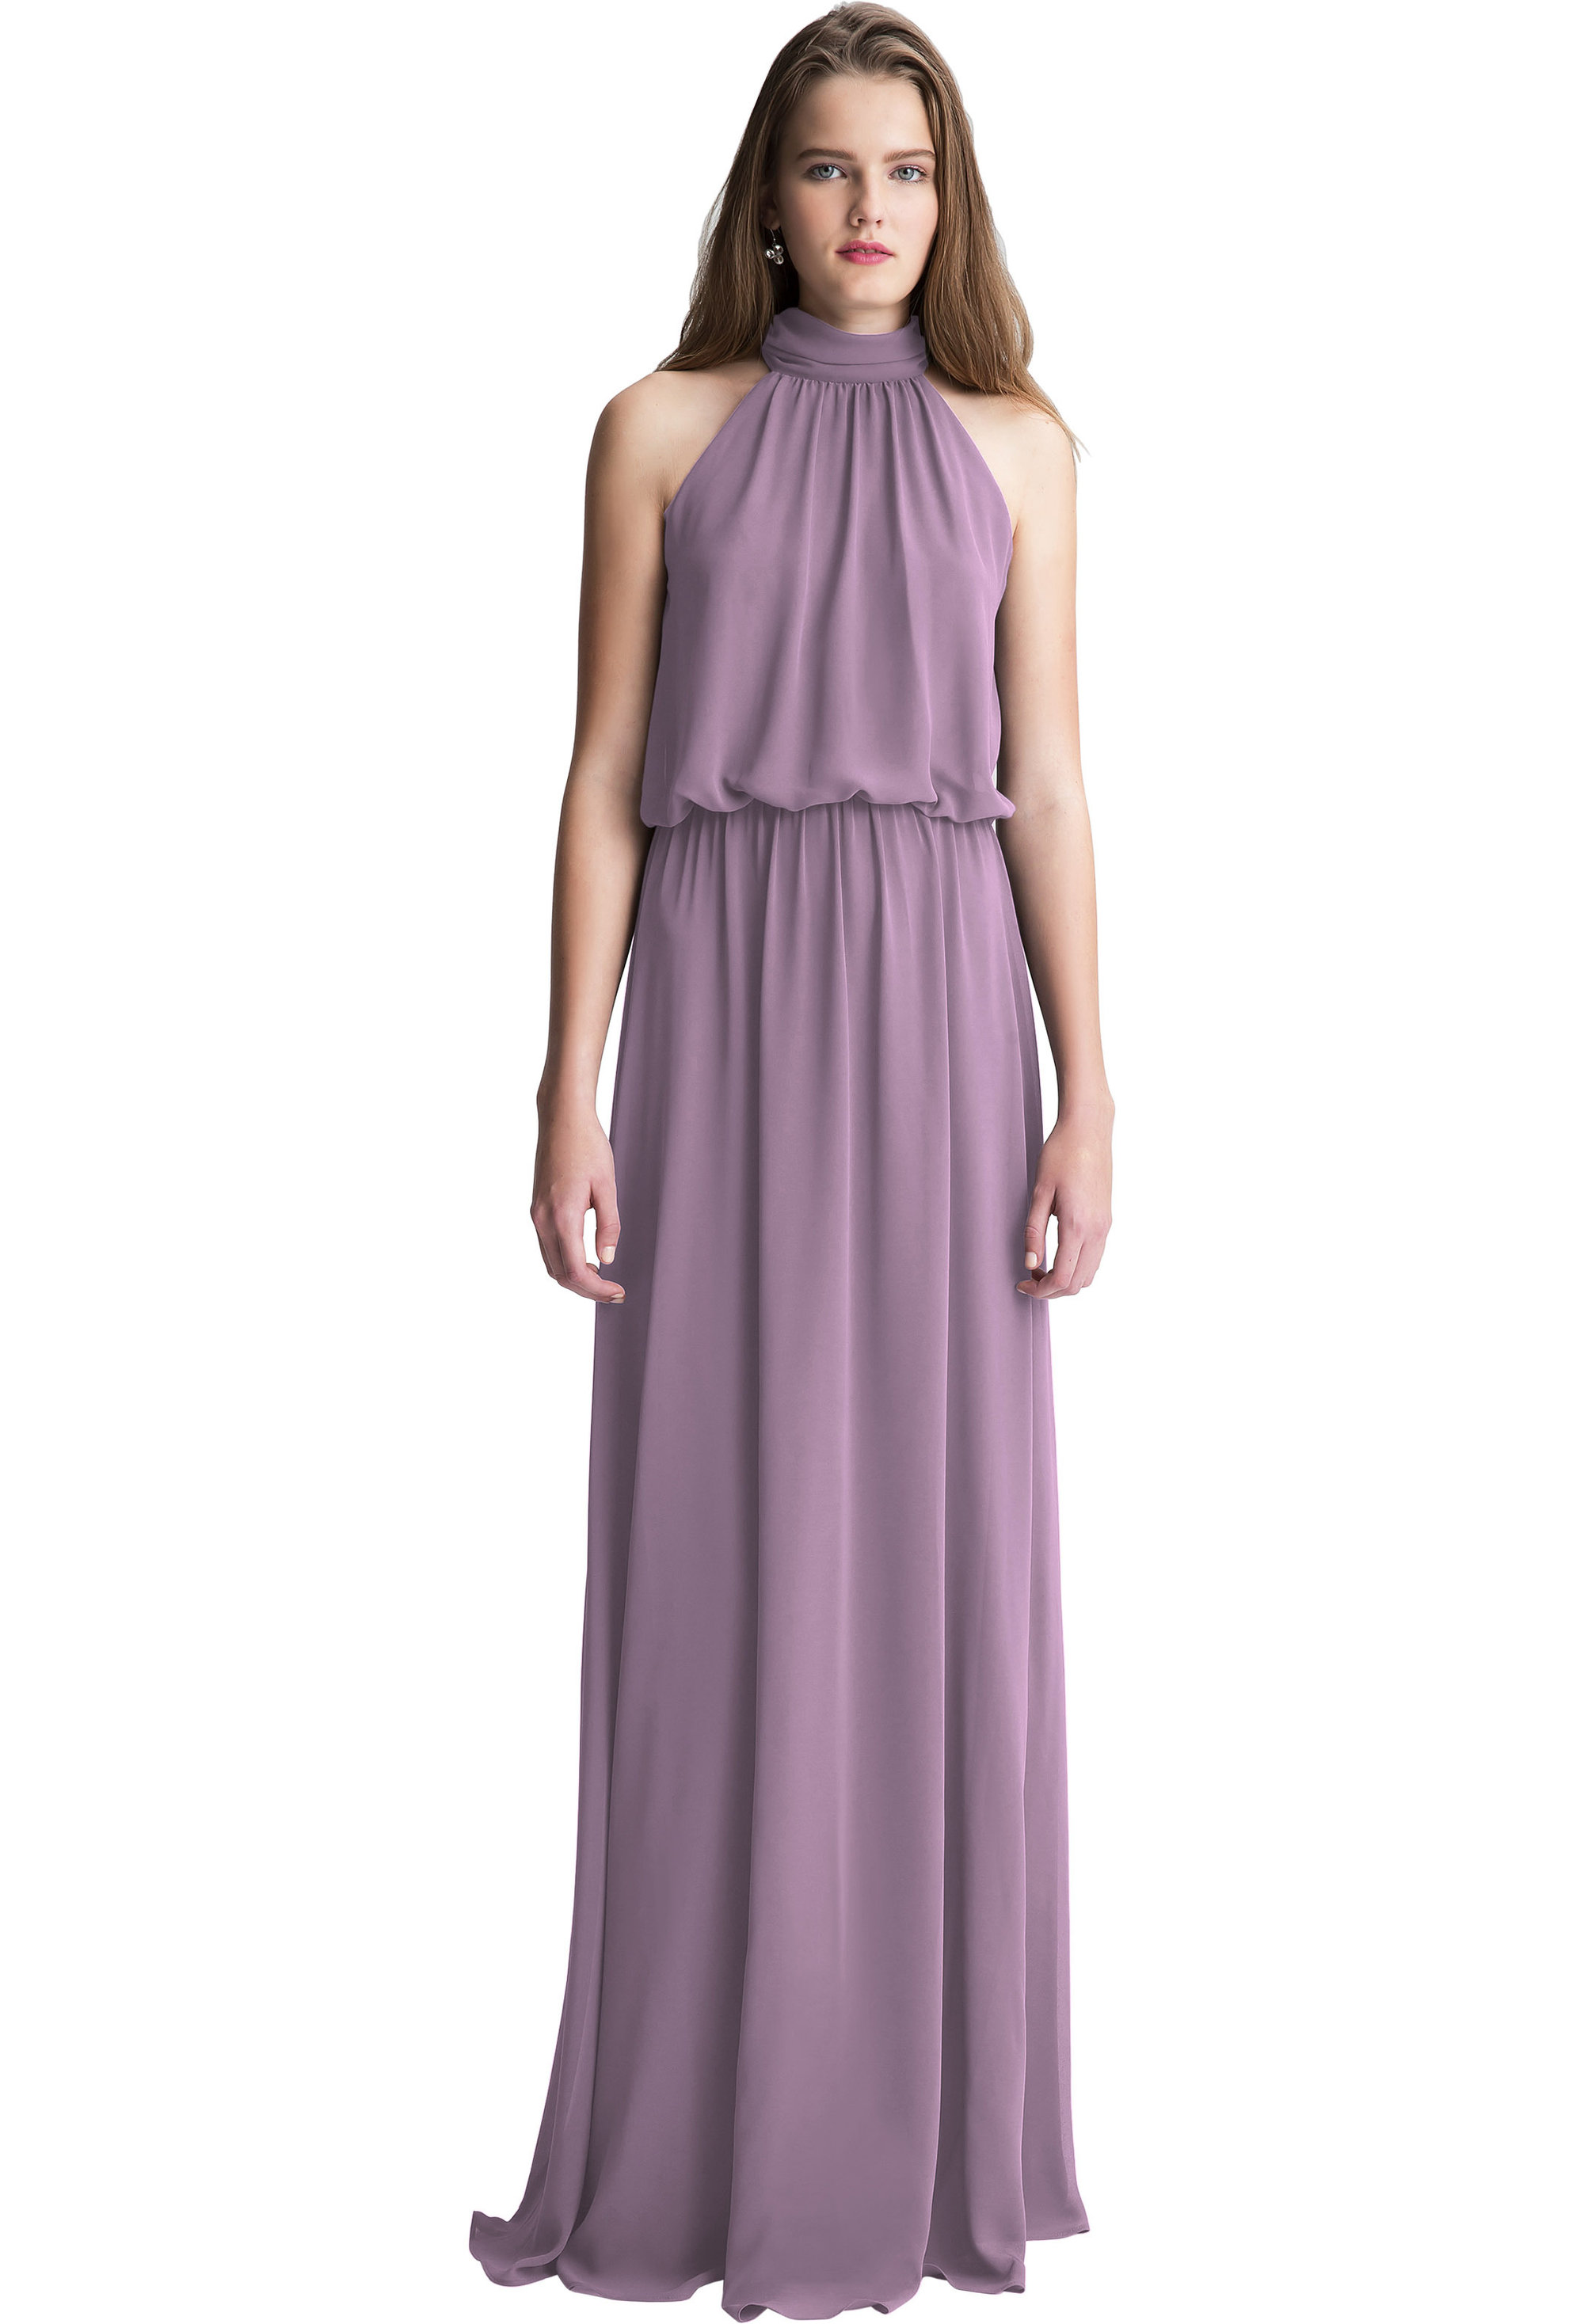 Bill Levkoff VICTORIAN LILAC Chiffon Halter A-line gown, $150.00 Front